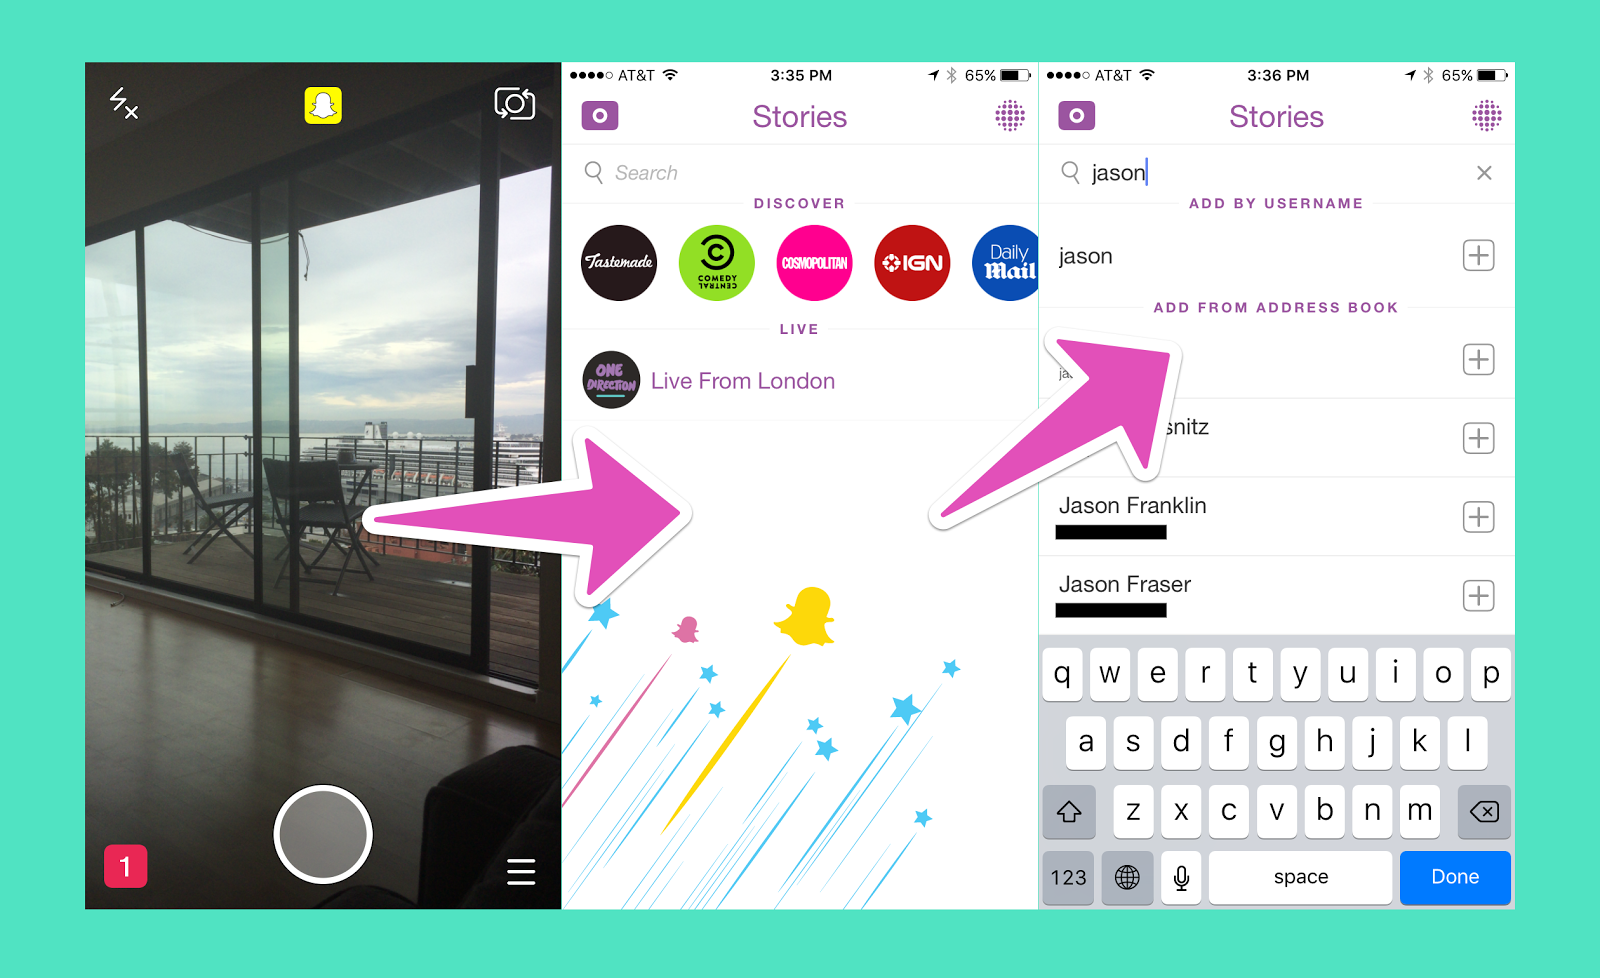 """Snapchat could use some user testing to improve its usability. For example, figuring out how to add a friend or contact is quite challenging because of the hidden CTA. A user has to begin typing on the search bar on the right-hand screen to be presented with users they can add from the Snapchat directory (or their address book). A Plus (+) button or """"Add friends"""" CTA would help with discoverability."""